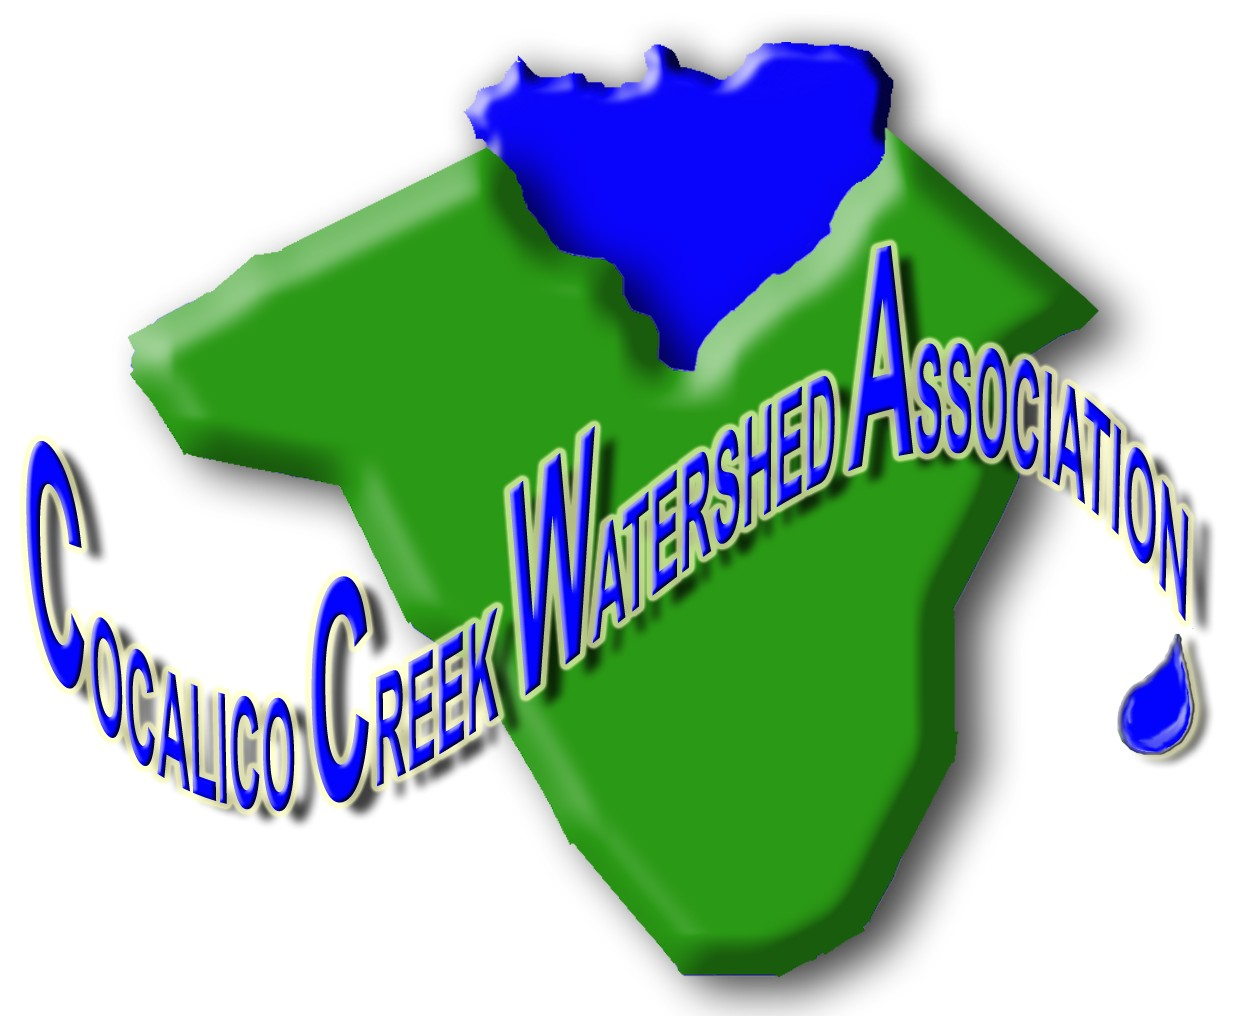 Cocalico Creek Watershed Association